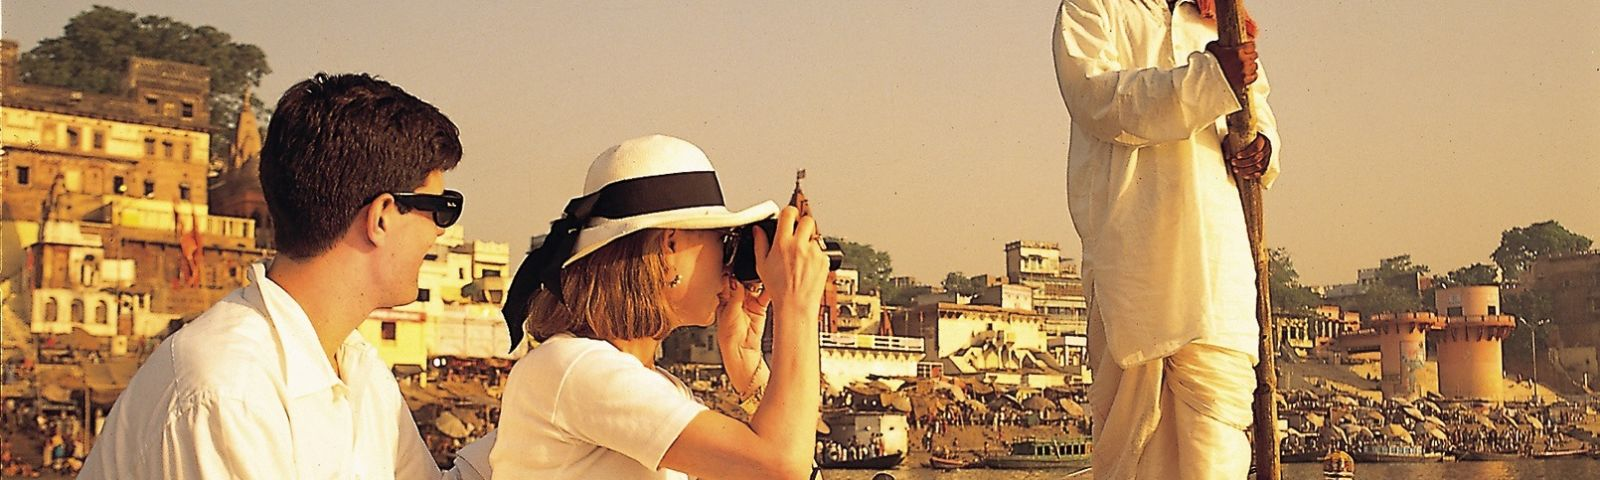 Rajasthan culture - Things to do in India